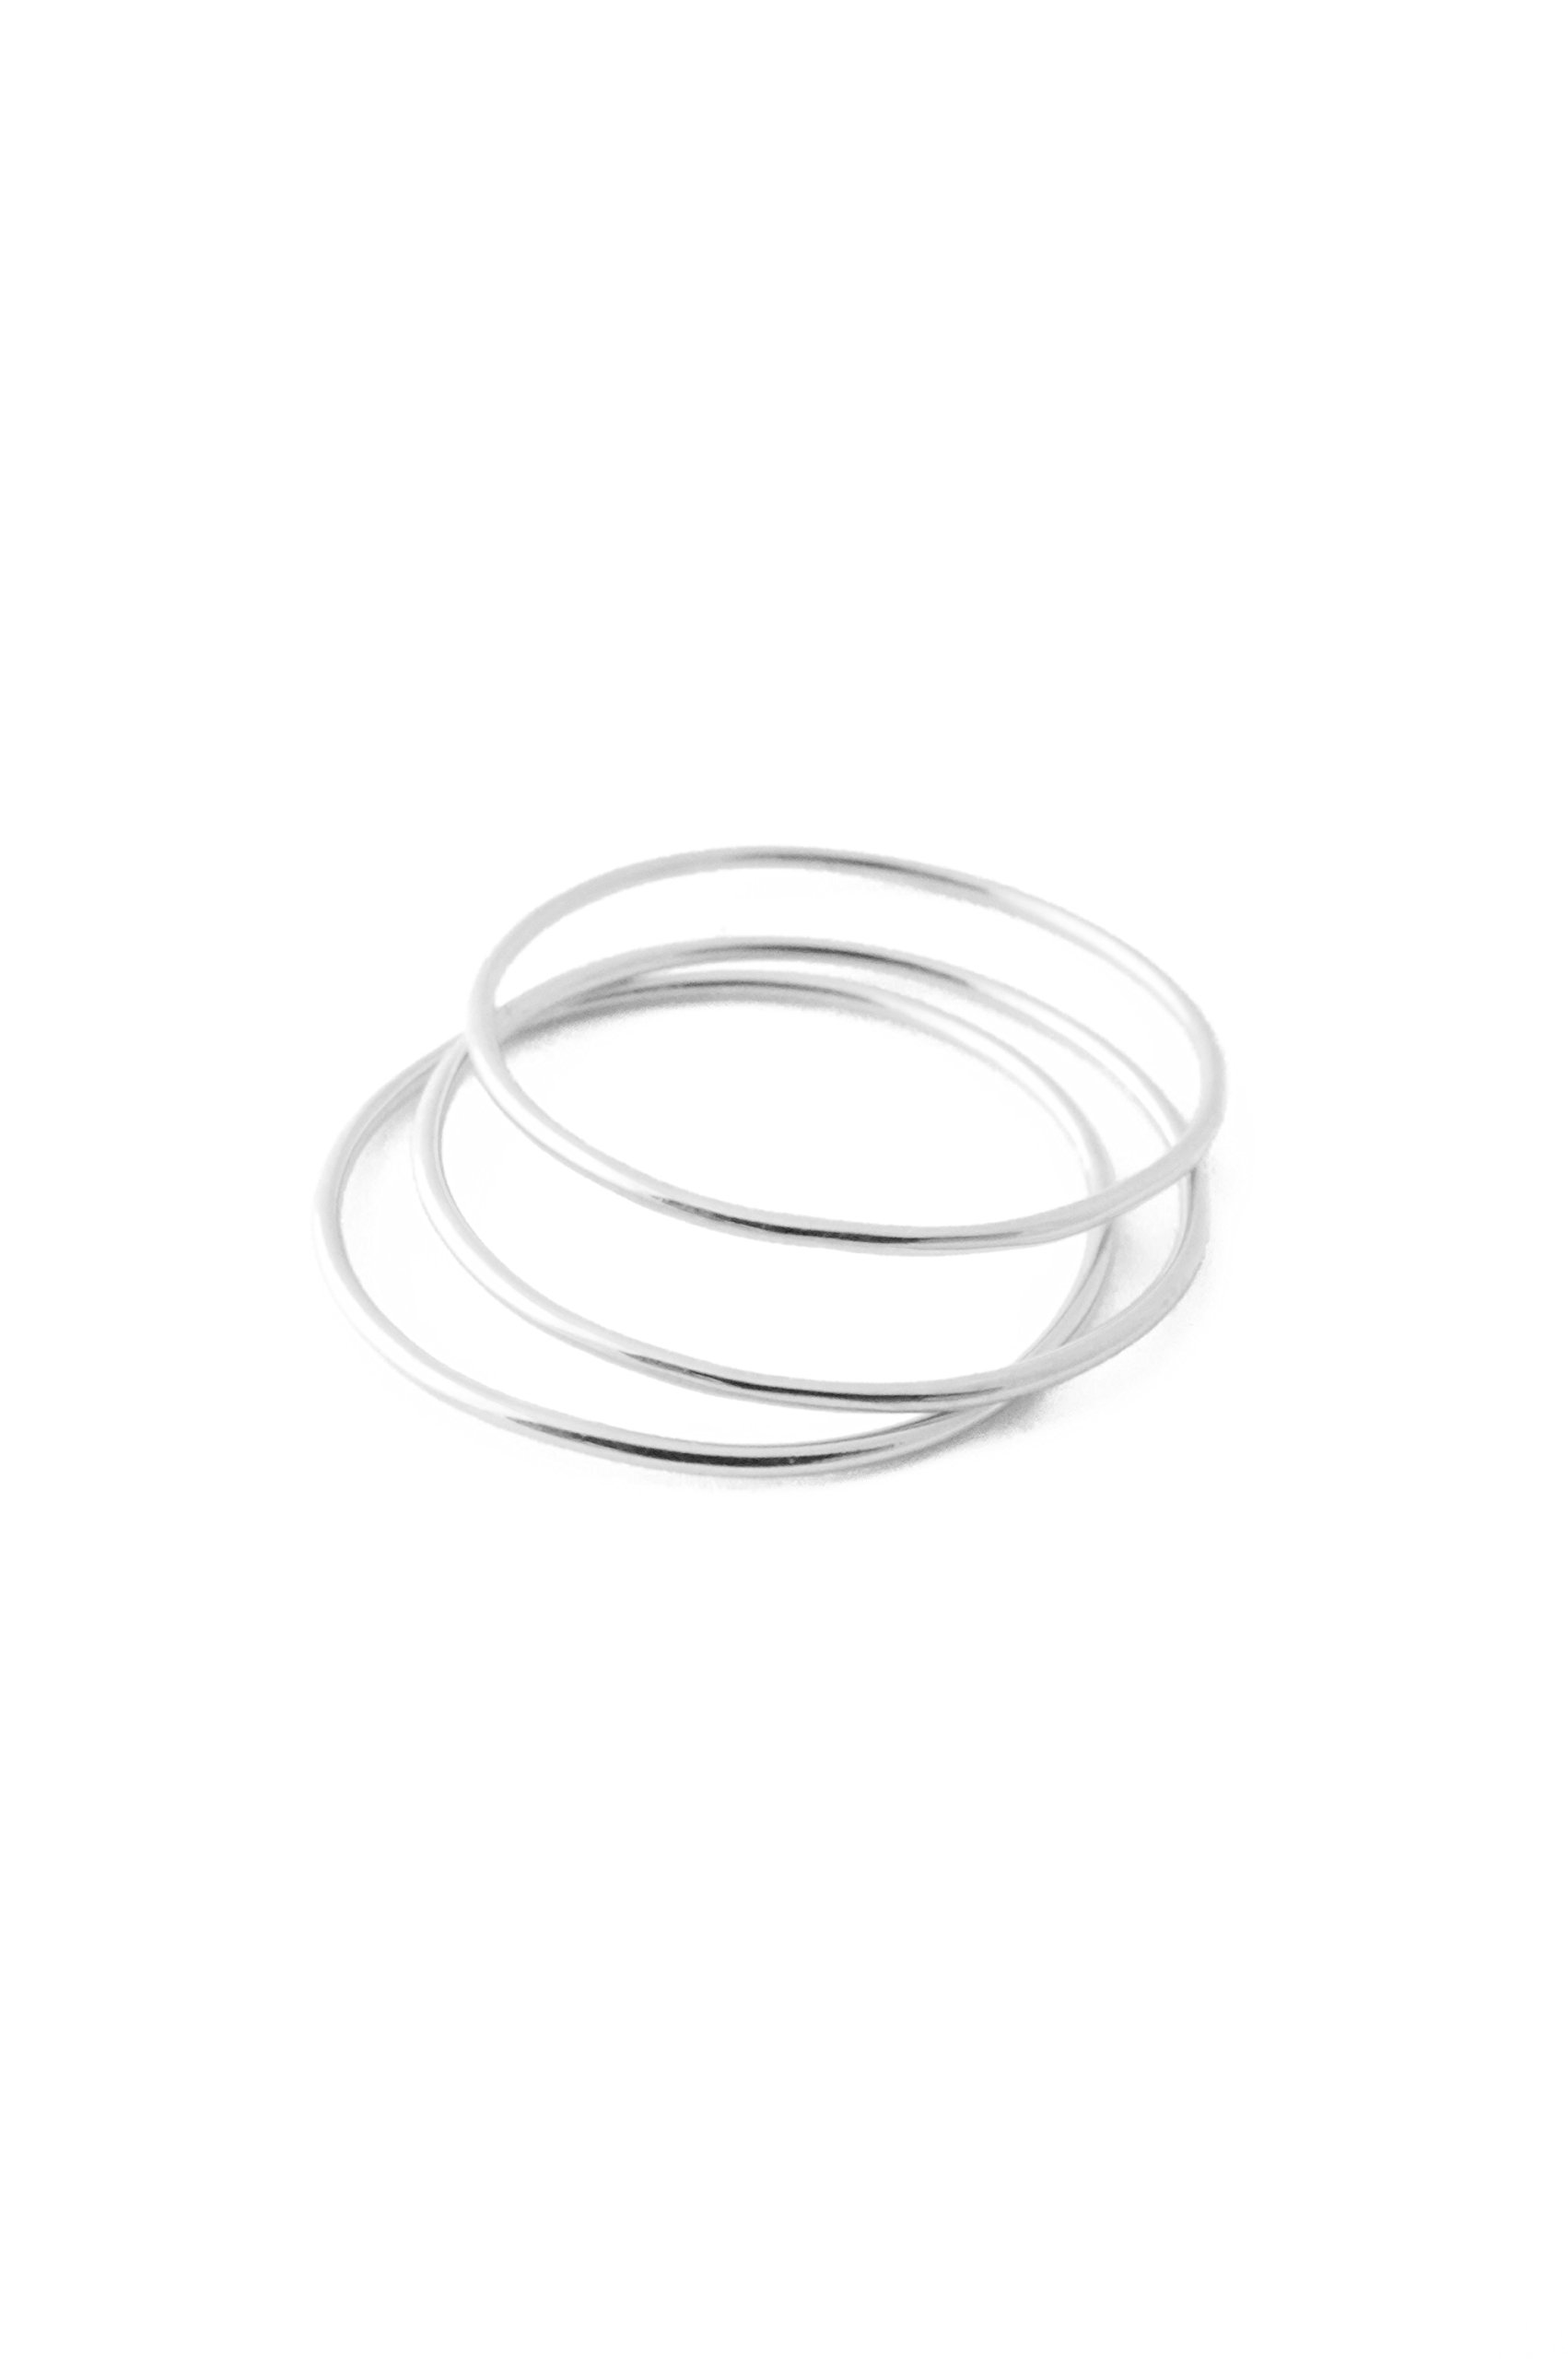 HONEYCAT Super Skinny Stacking Rings Trio Set in Sterling Silver Plate | Minimalist, Delicate Jewelry (Silver, 5)